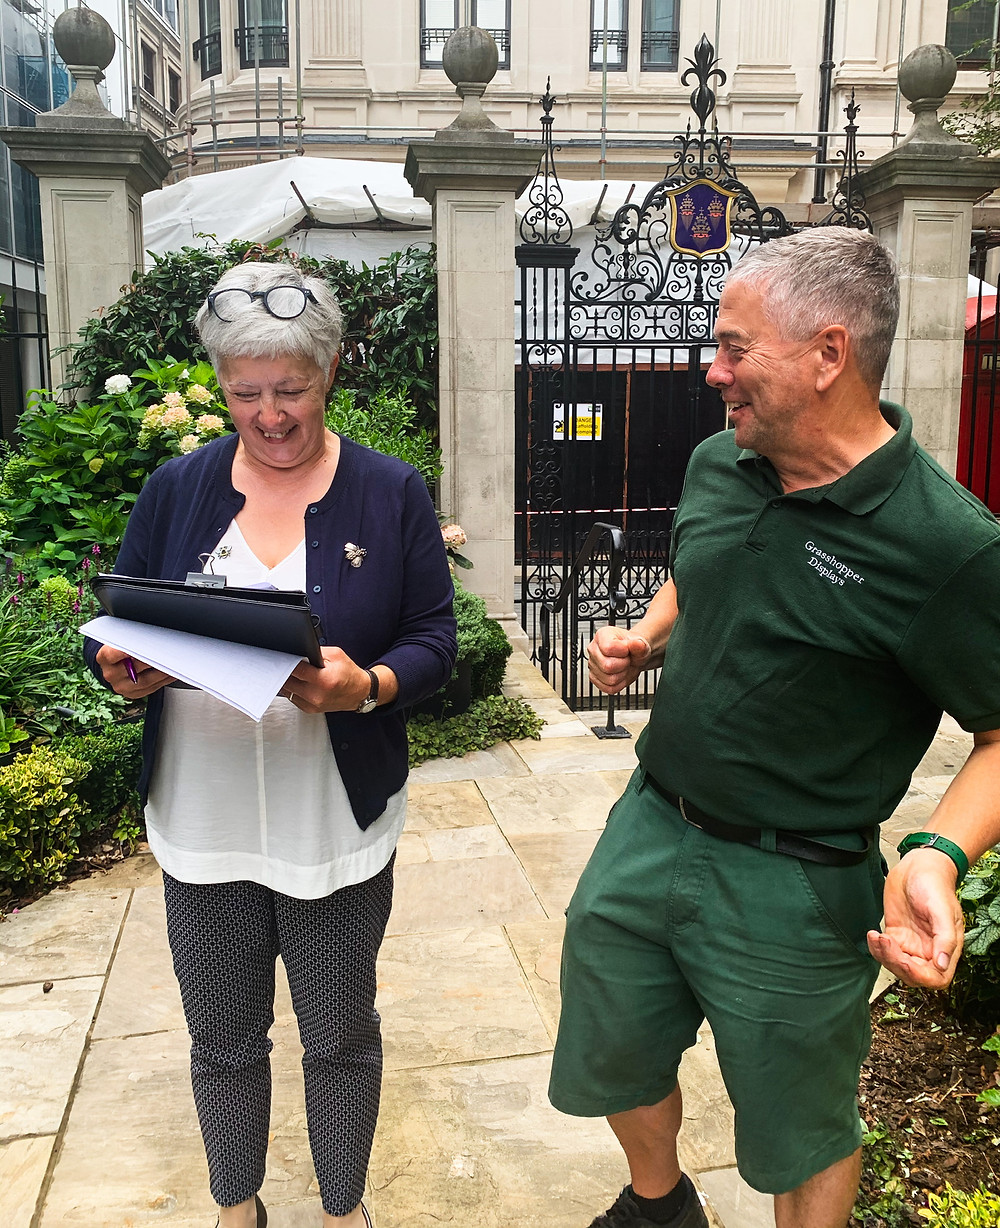 A lady with a clipboard smiling as a gardener celebrates successfully ticking boxes in a garden audit